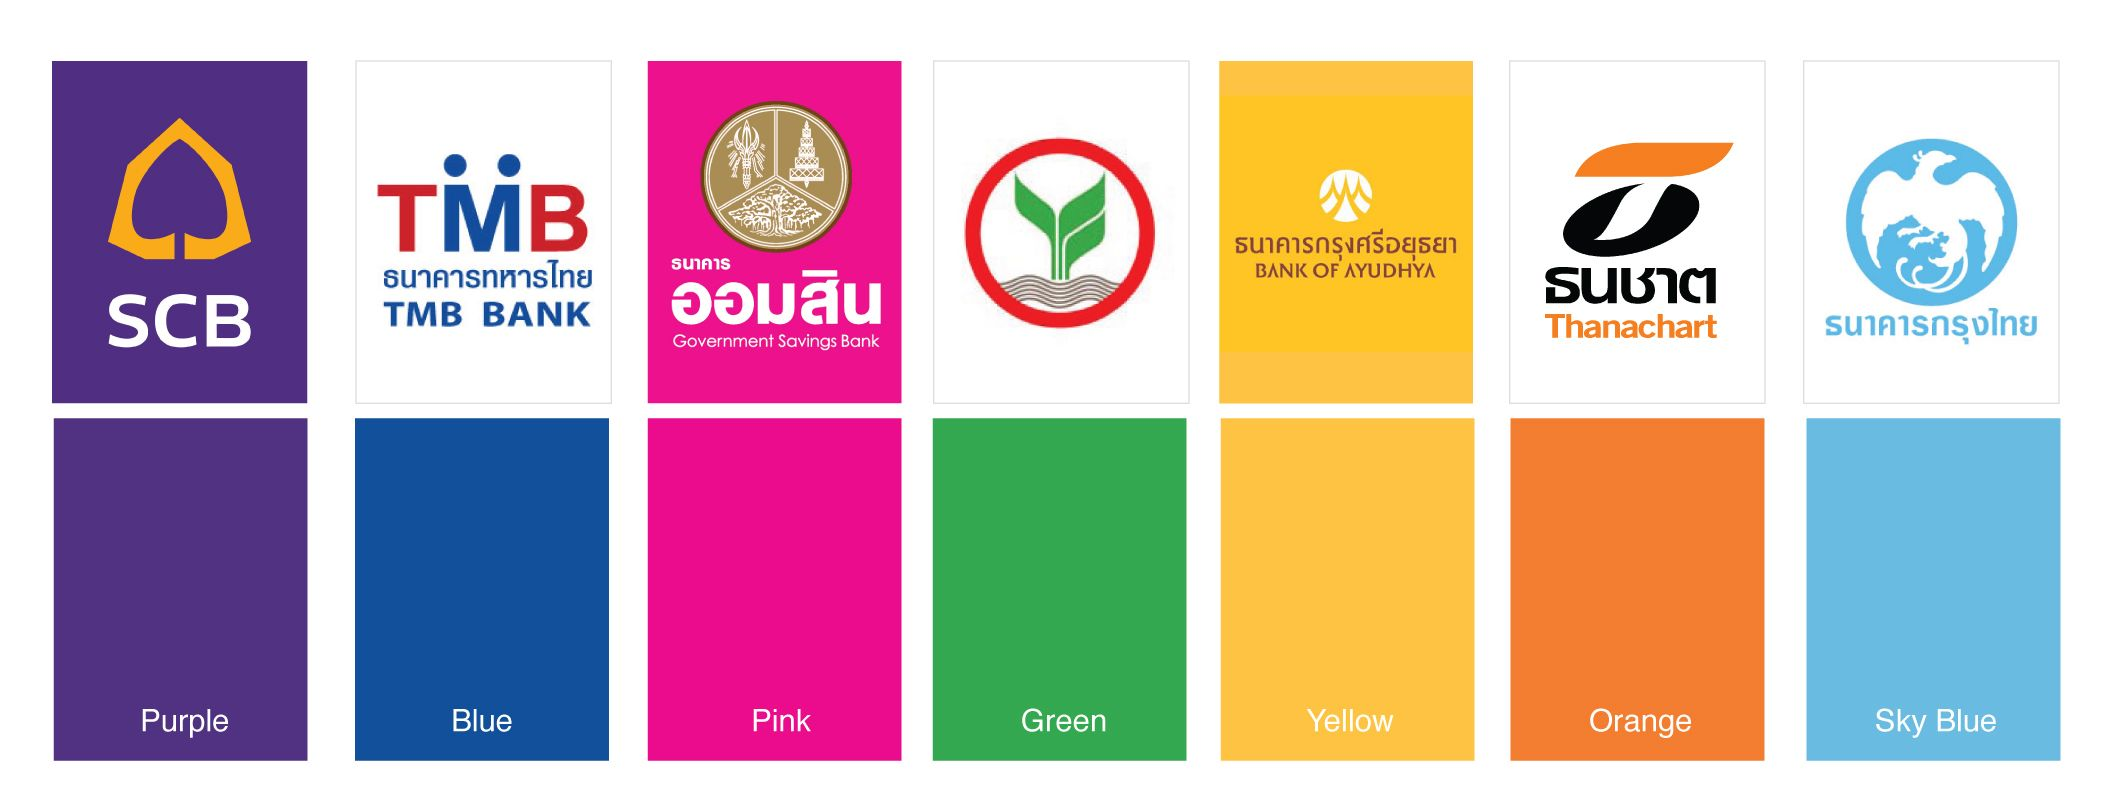 thailand bank brand color | Infographic | Pinterest ...